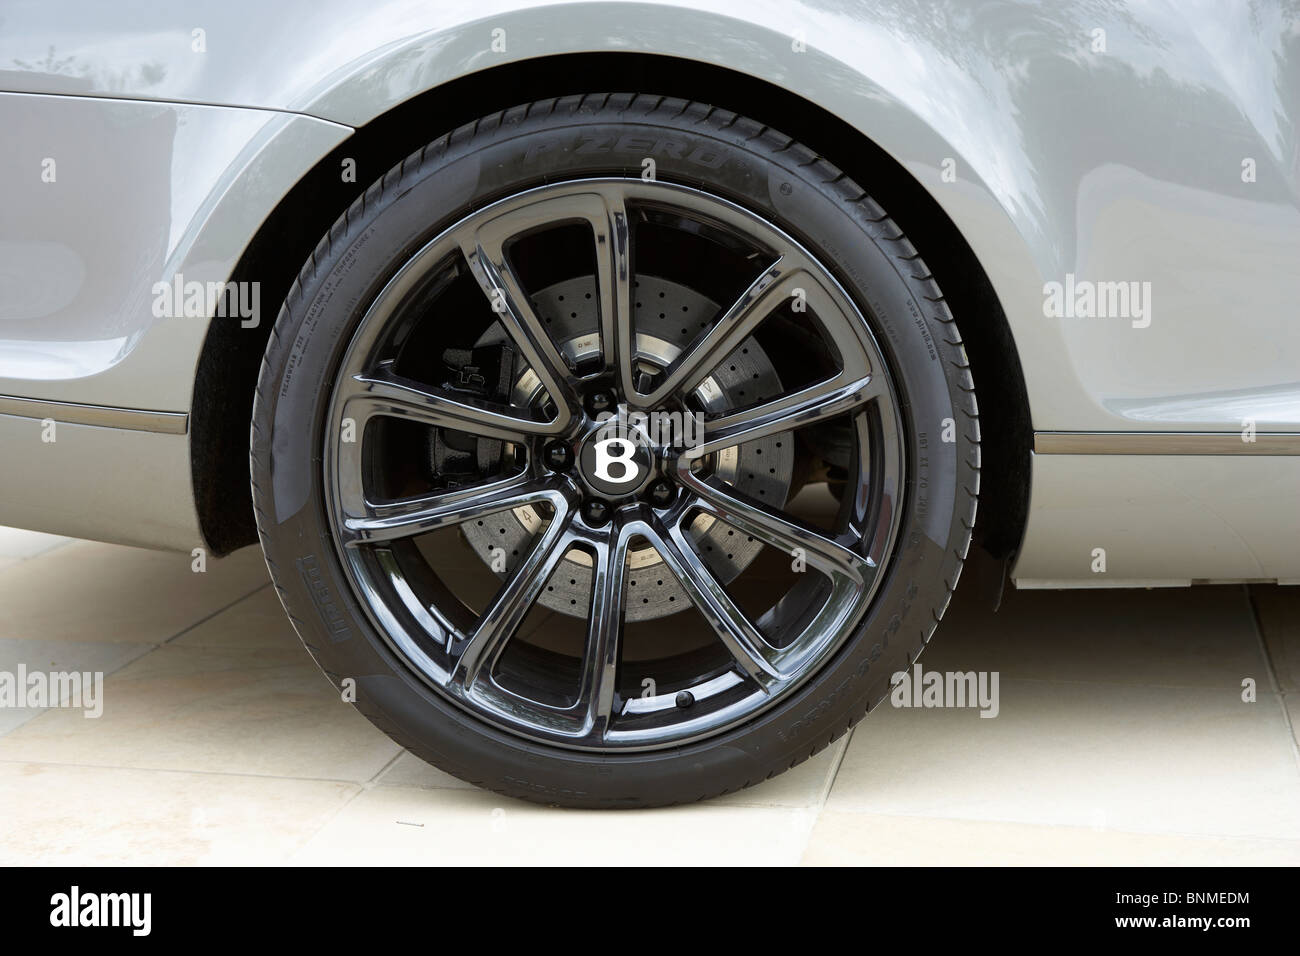 BENTLEY TURBO SPORTS ALLOY WHEEL BADGE LOGO - Stock Image